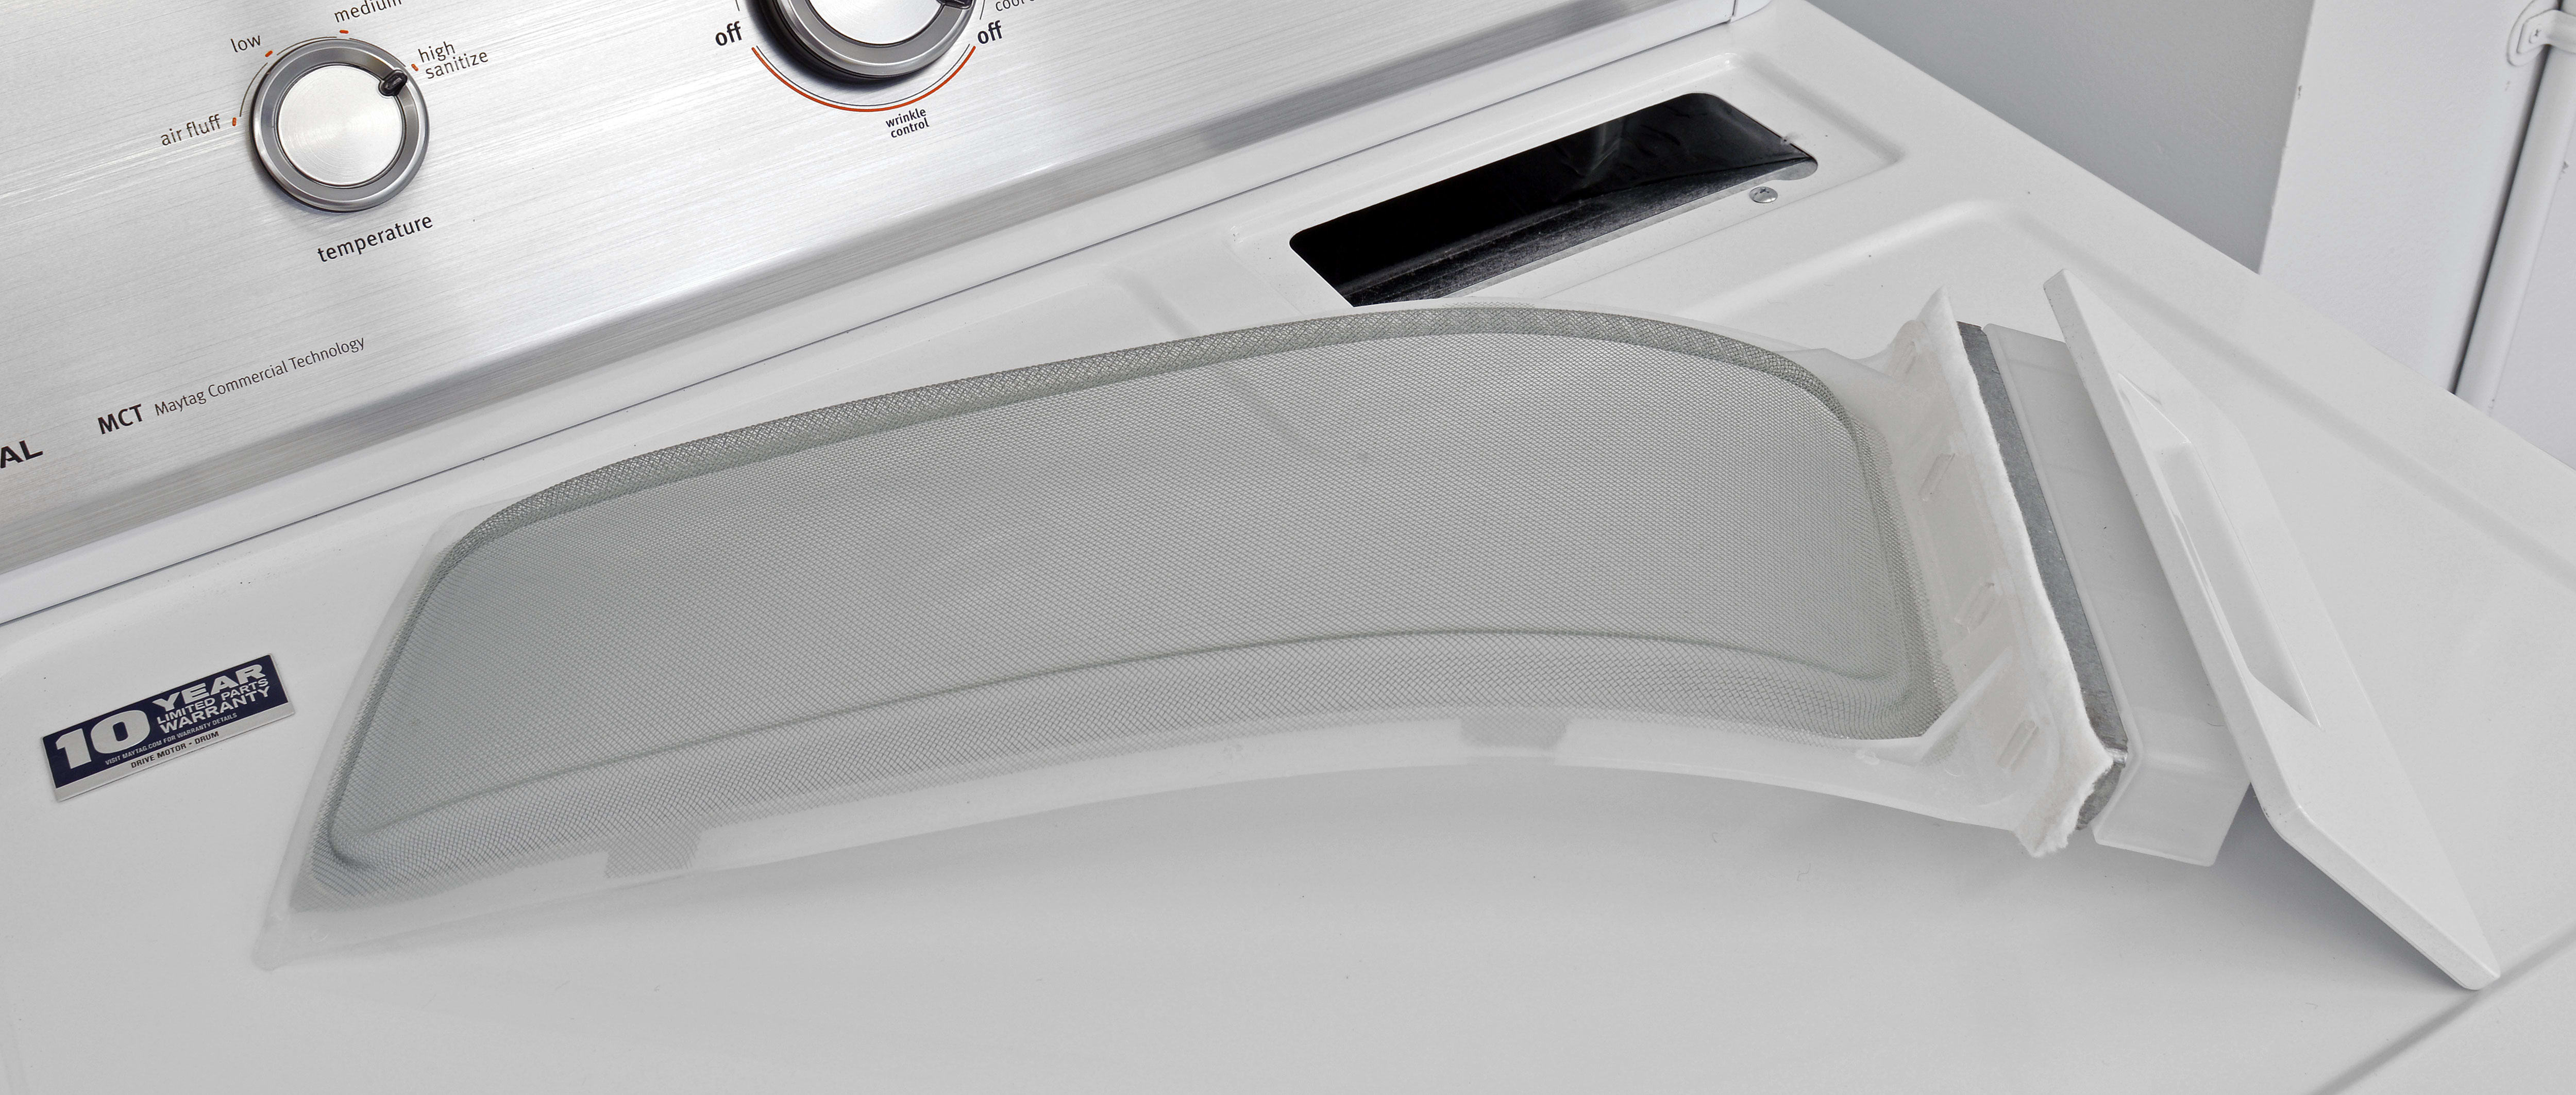 Pullout lint traps are very old school, and common on budget dryers like the Maytag Centennial MEDC415EW.